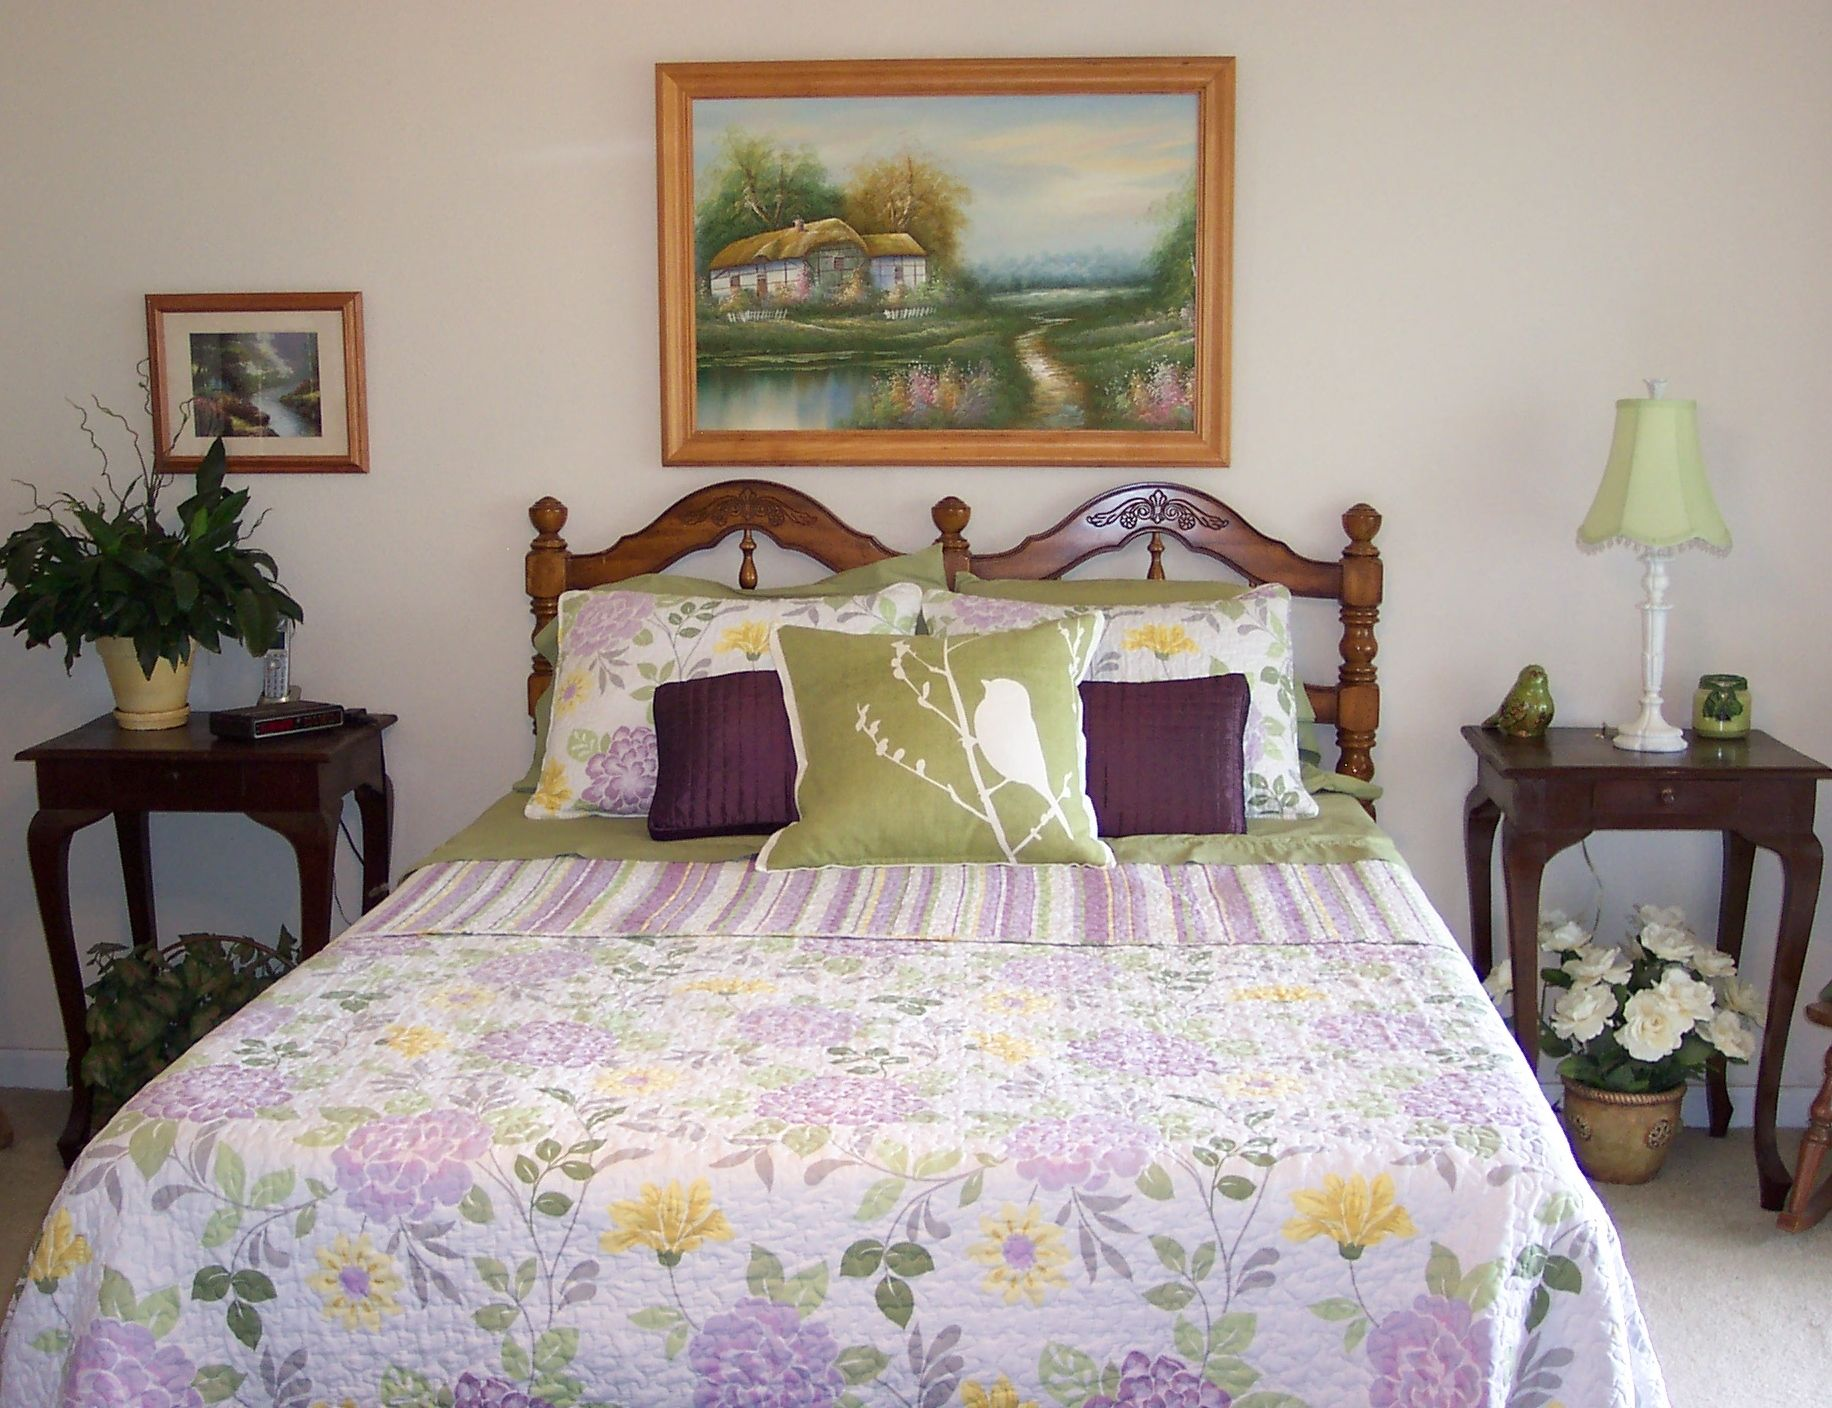 Spring décor for the master bedroom. I love this quilt